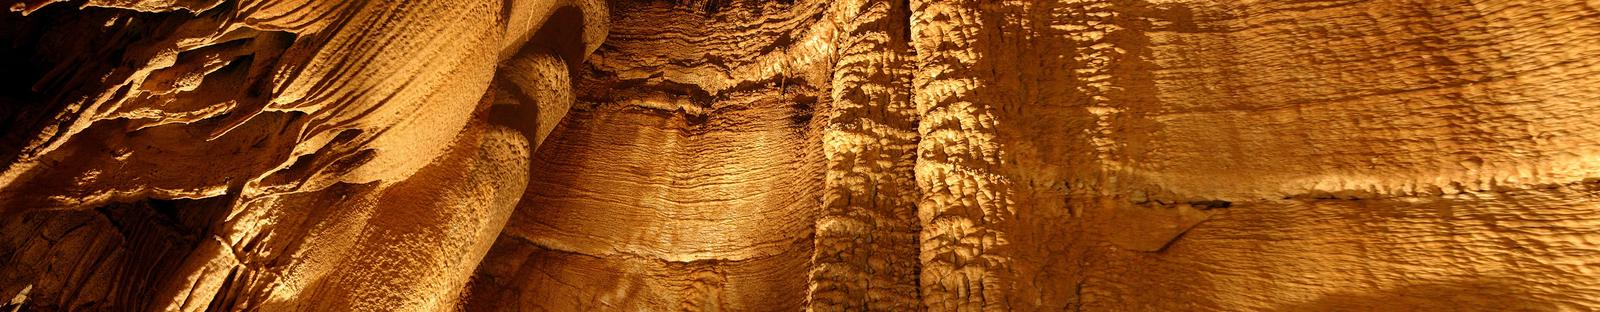 Domes and Dripstones tour has vast areas of flowstone that resembles draperies. Domes and Dripstones tour